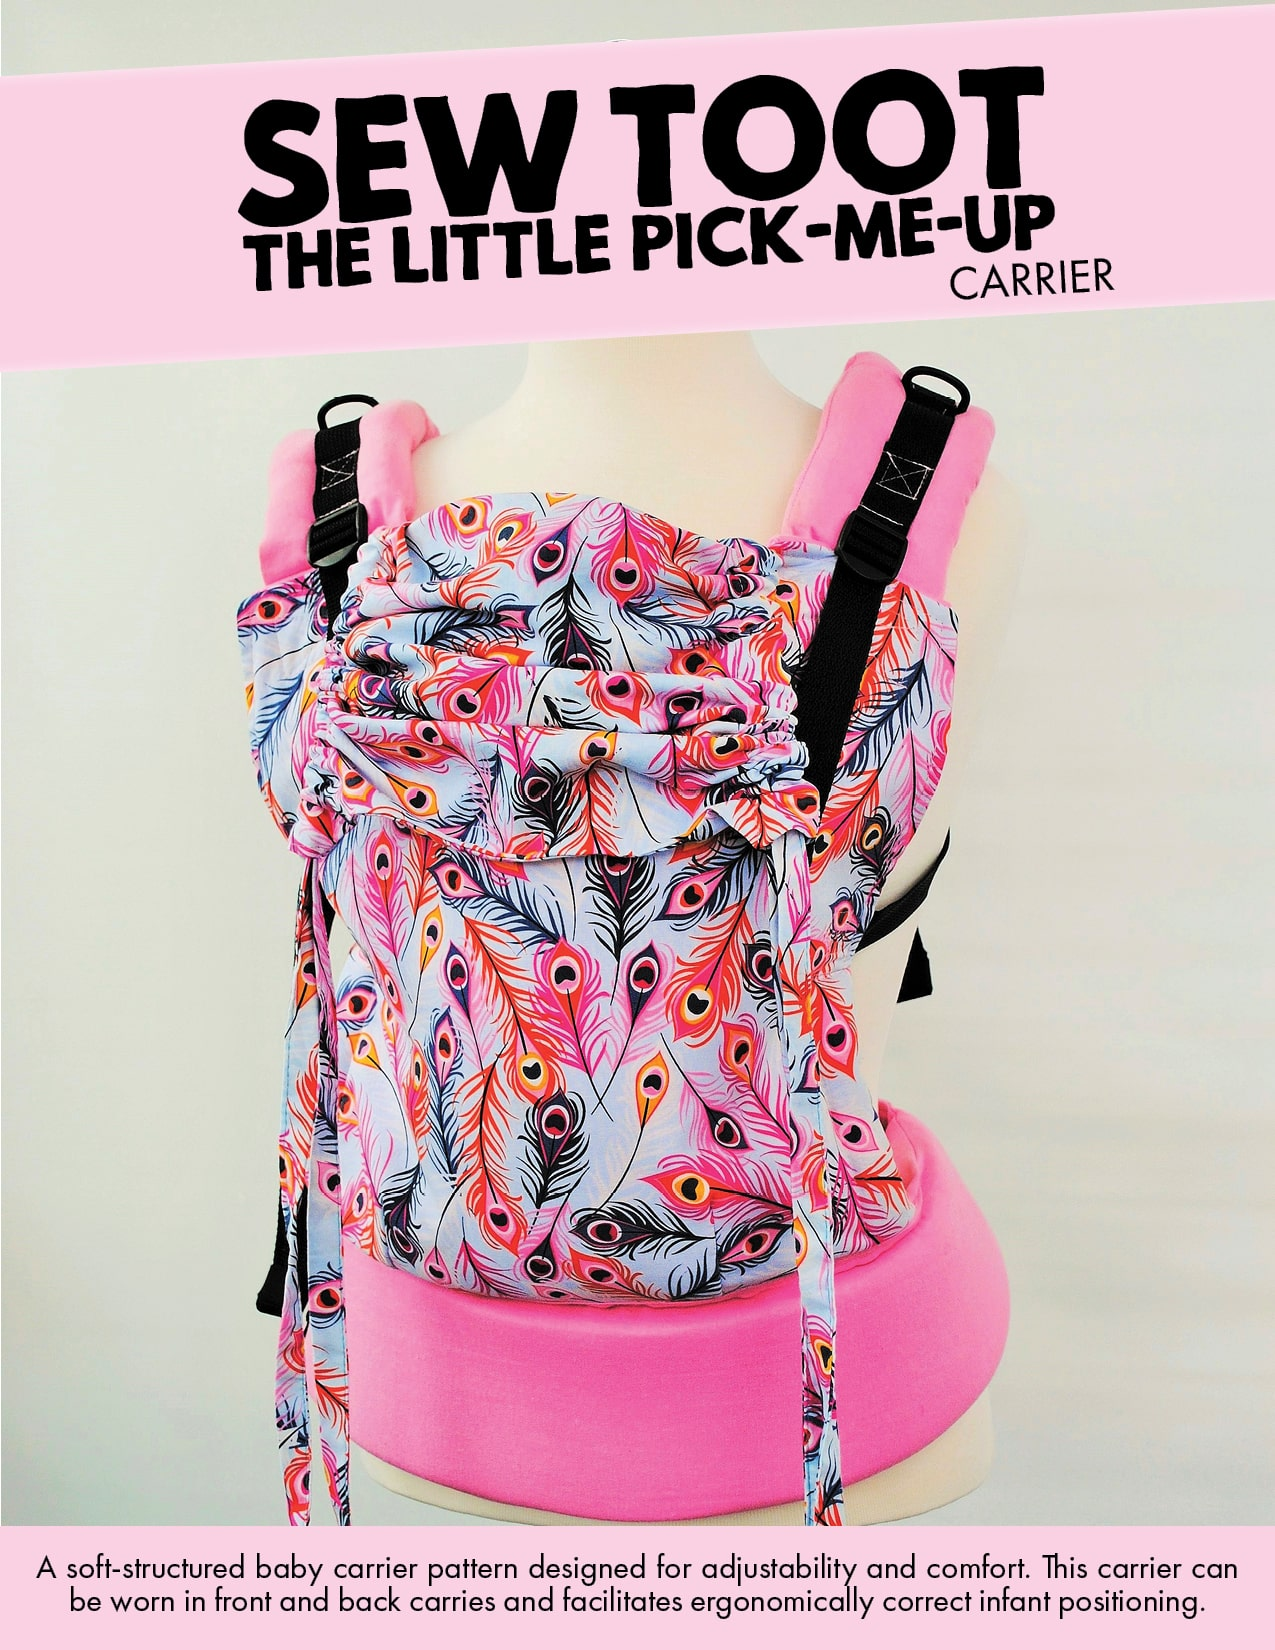 460979c0ab6 Baby Carrier Sewing Pattern - The Little Pick-Me-Up by Sew Toot